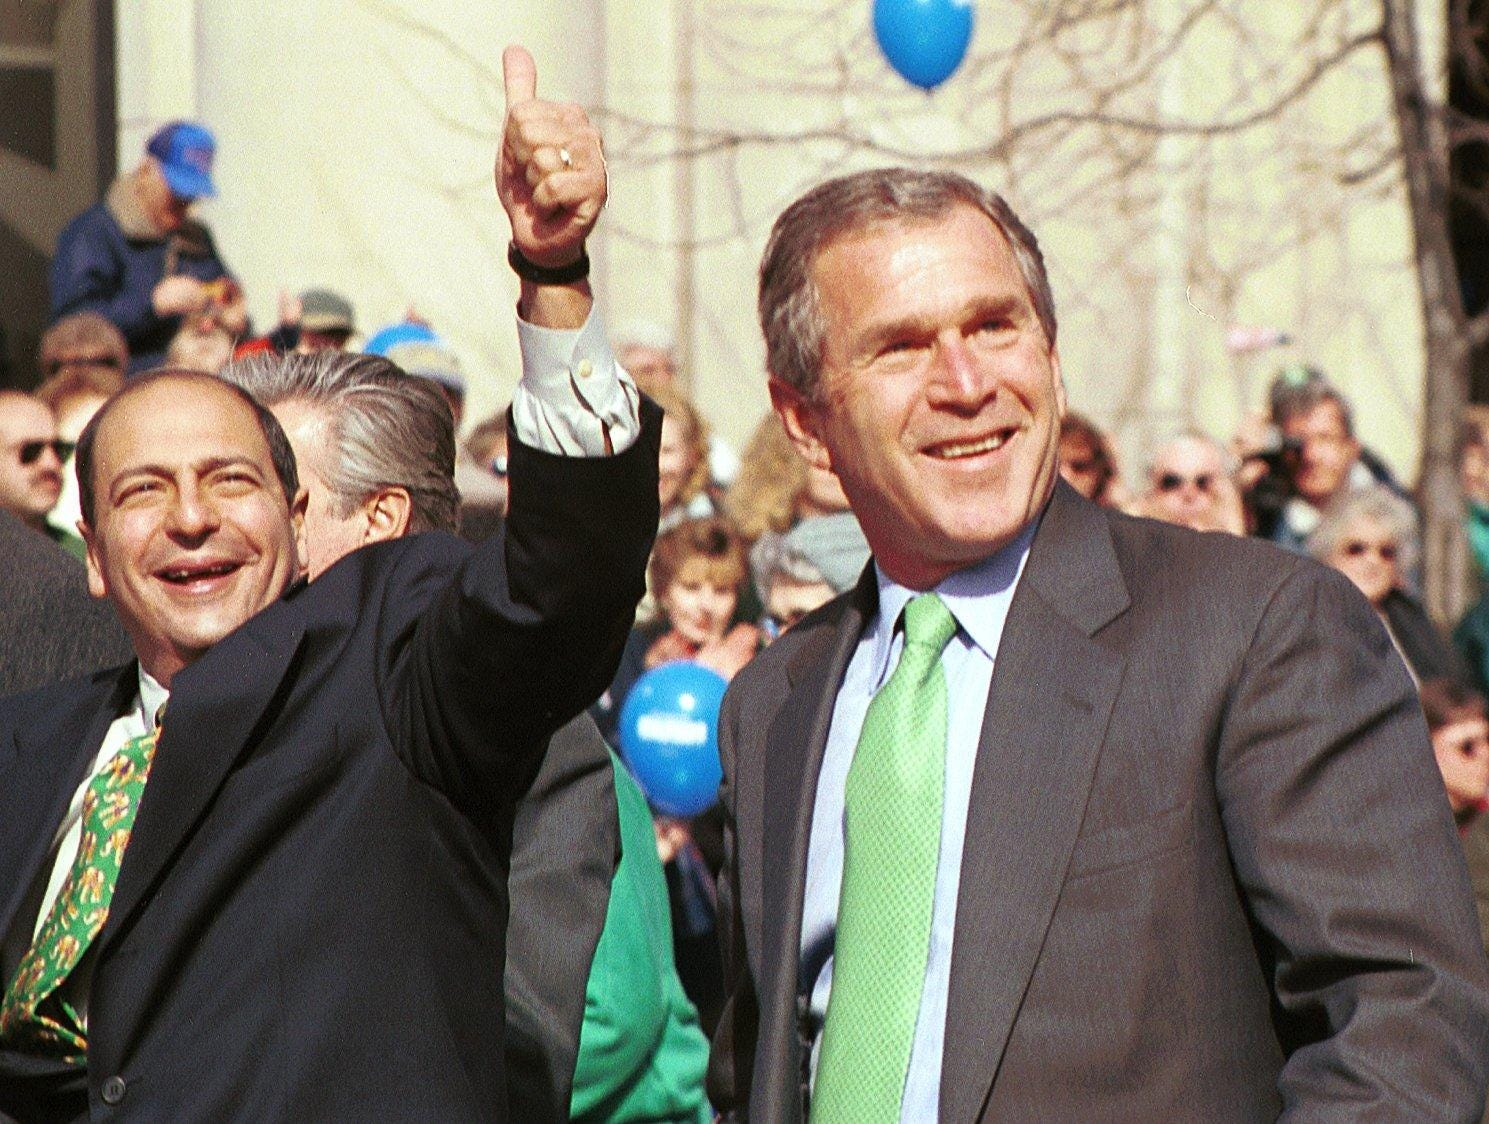 2000: The annual St.Patrick's Day parade in Binghamton had a few more people than usual including from left, State Senator Thomas Libous and Presidential Candidate George W. Bush. March 4, 2000.